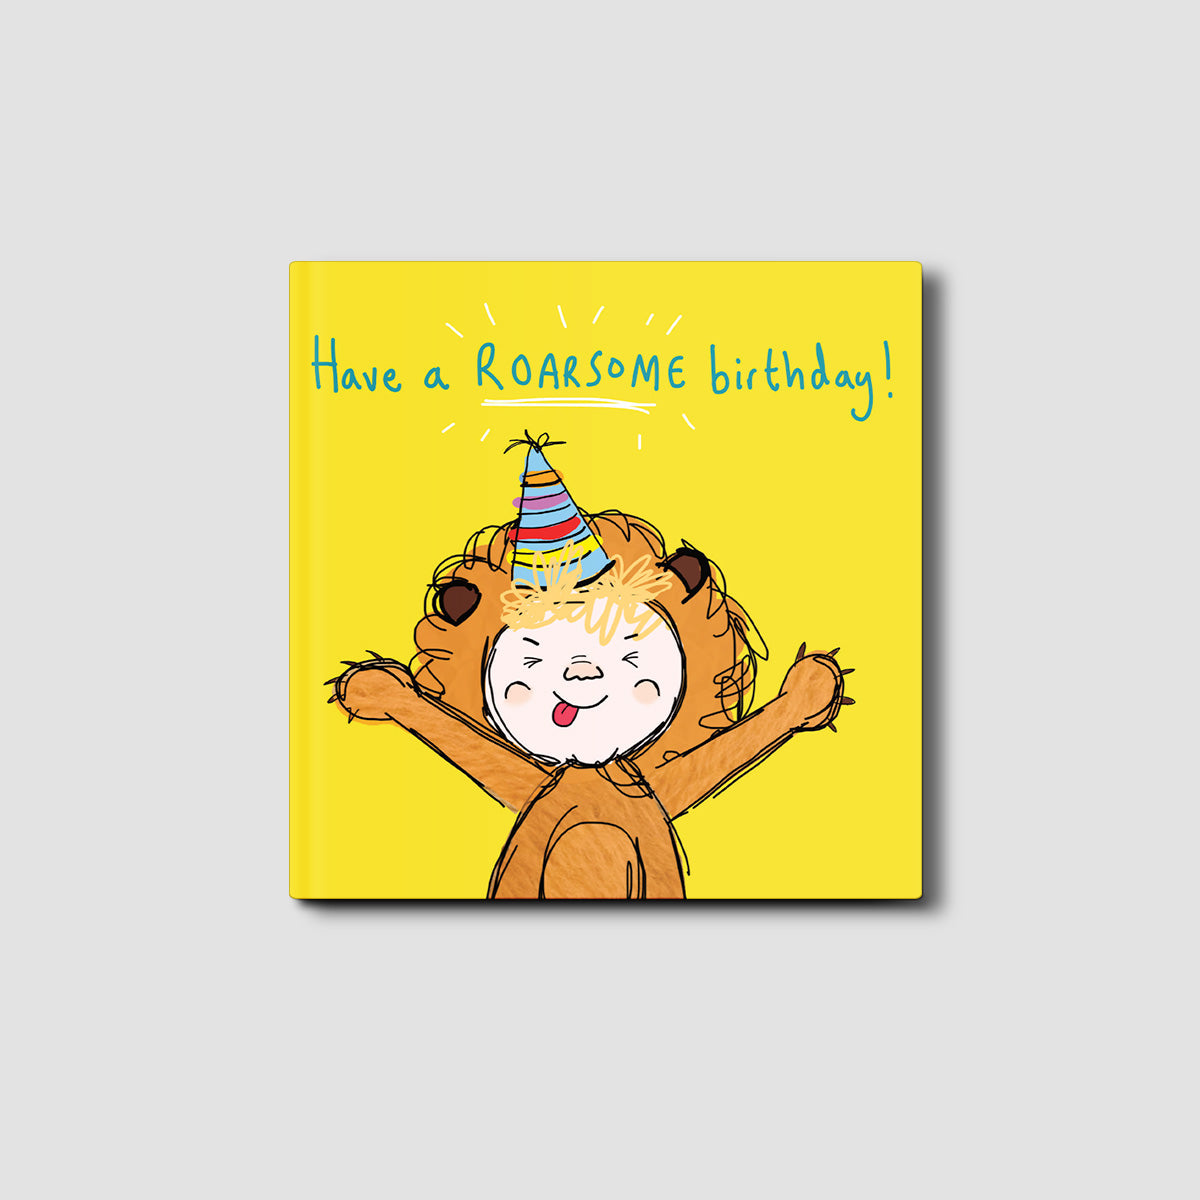 Have a Roarsome Birthday Silly Eric Card